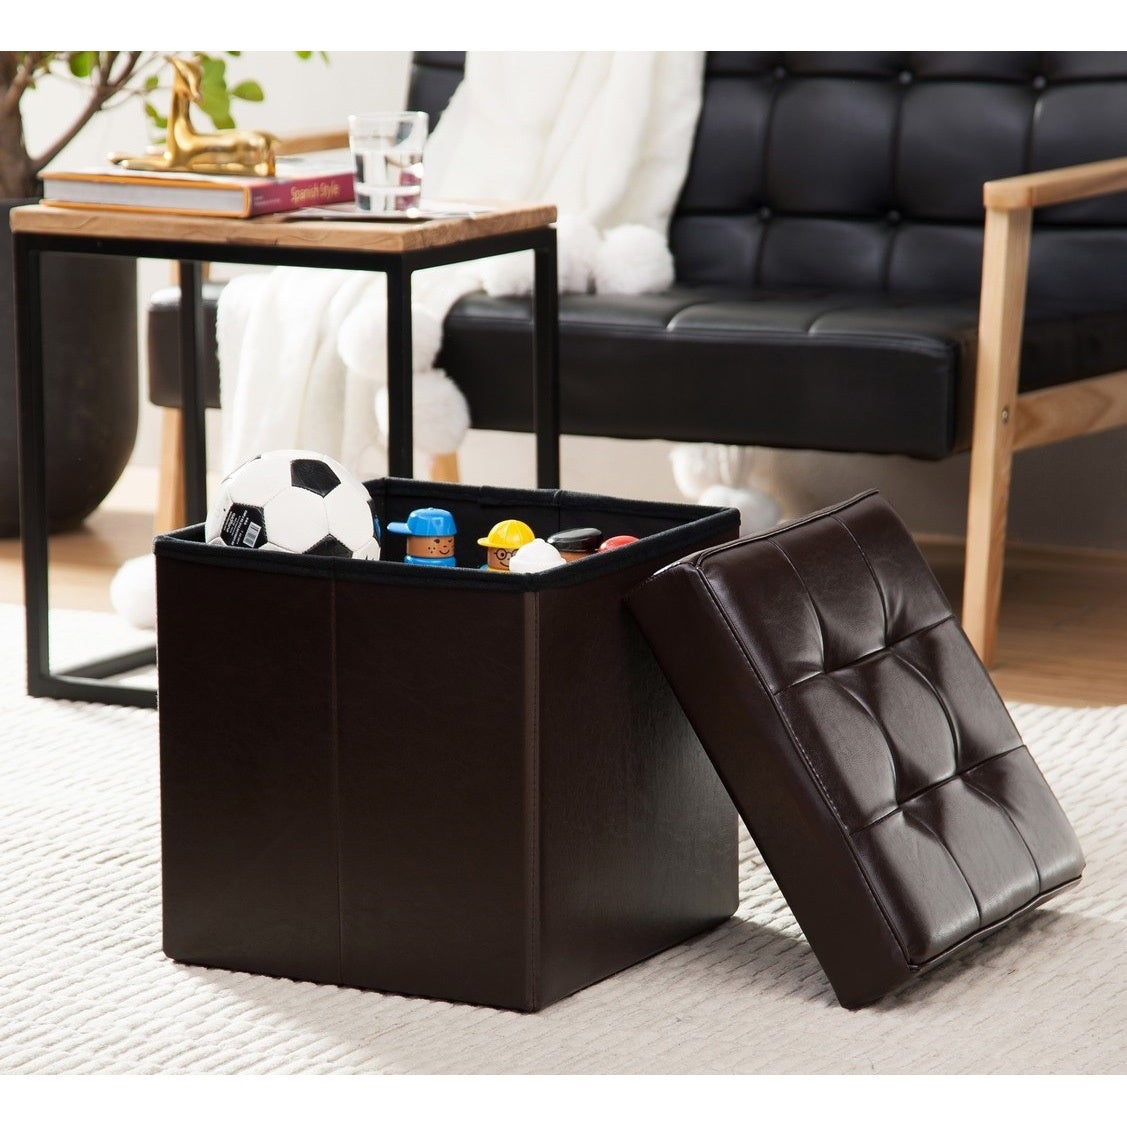 Porch & Den Boerum Hill Nevins Foldable Tufted Leather Storage Ottoman Cube